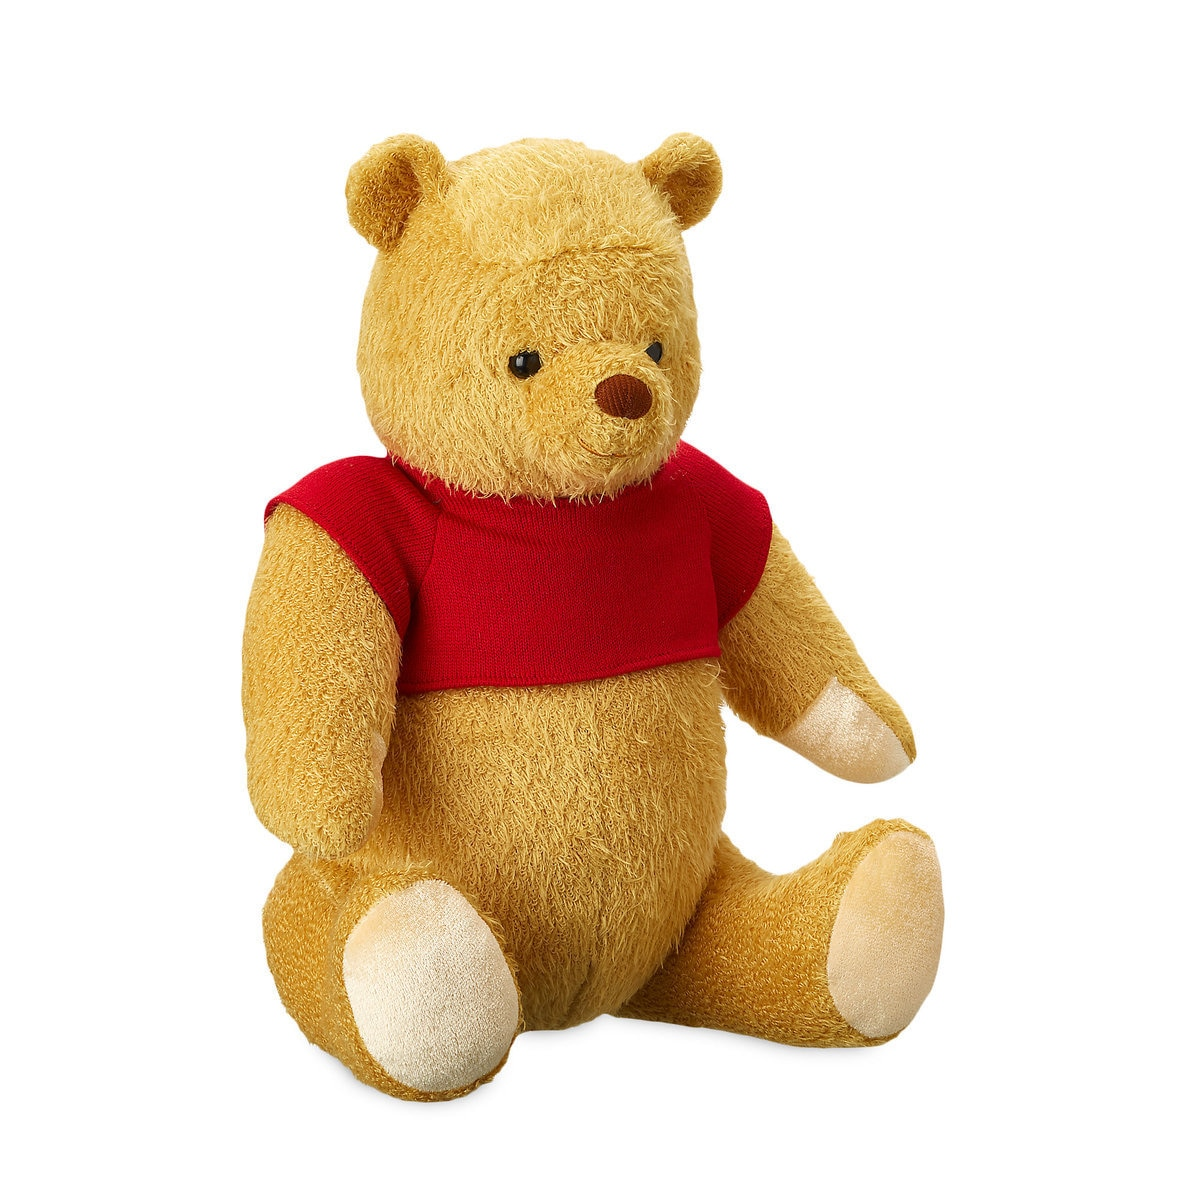 c2bcb7ef8b6a Product Image of Winnie the Pooh Plush - Christopher Robin - Medium   1